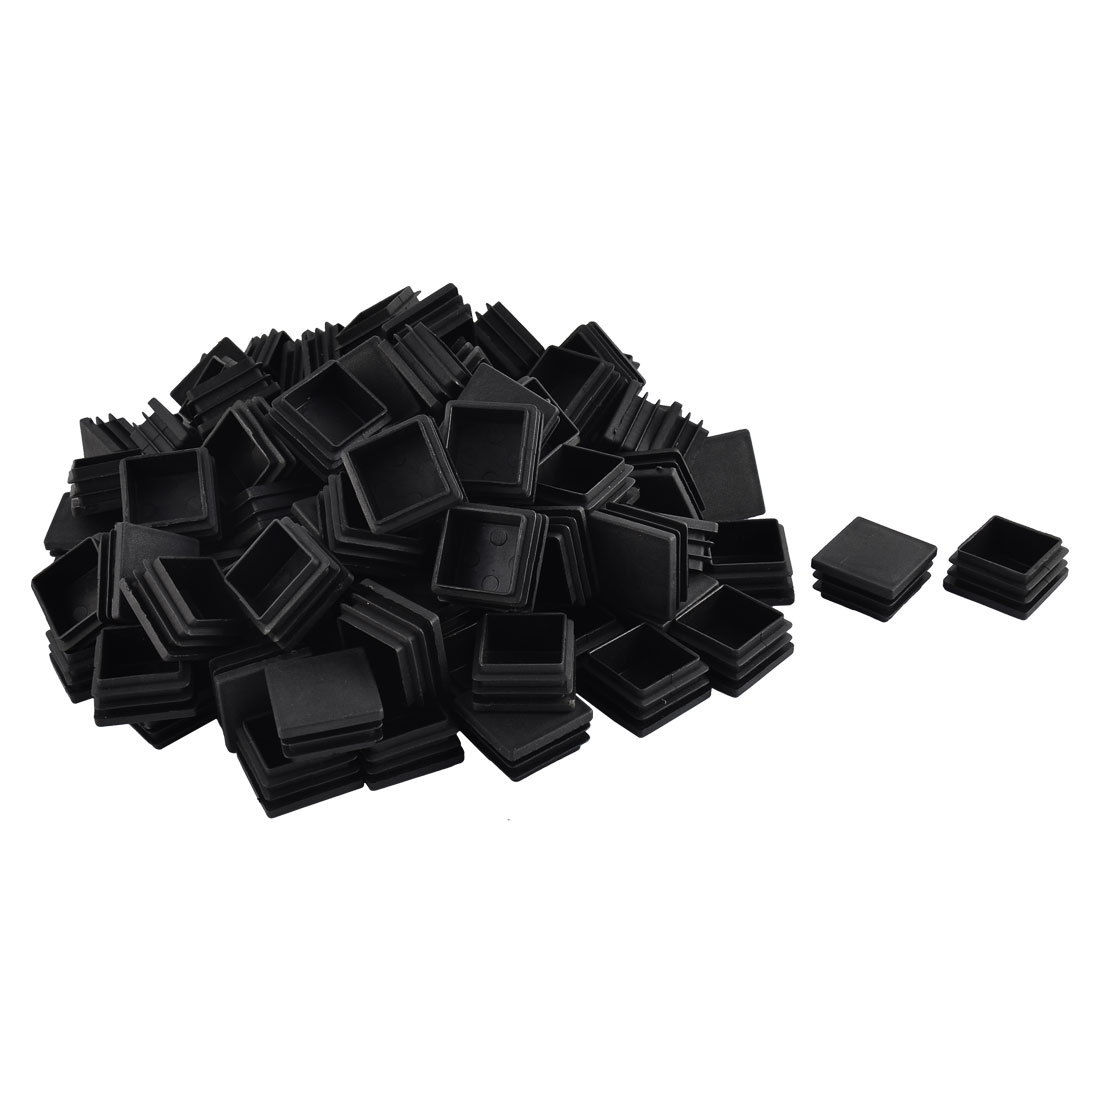 Furniture Table Chair Plastic Square Tube Pipe Insert Cap Cover Protector Black 35 x 35mm 100pcs